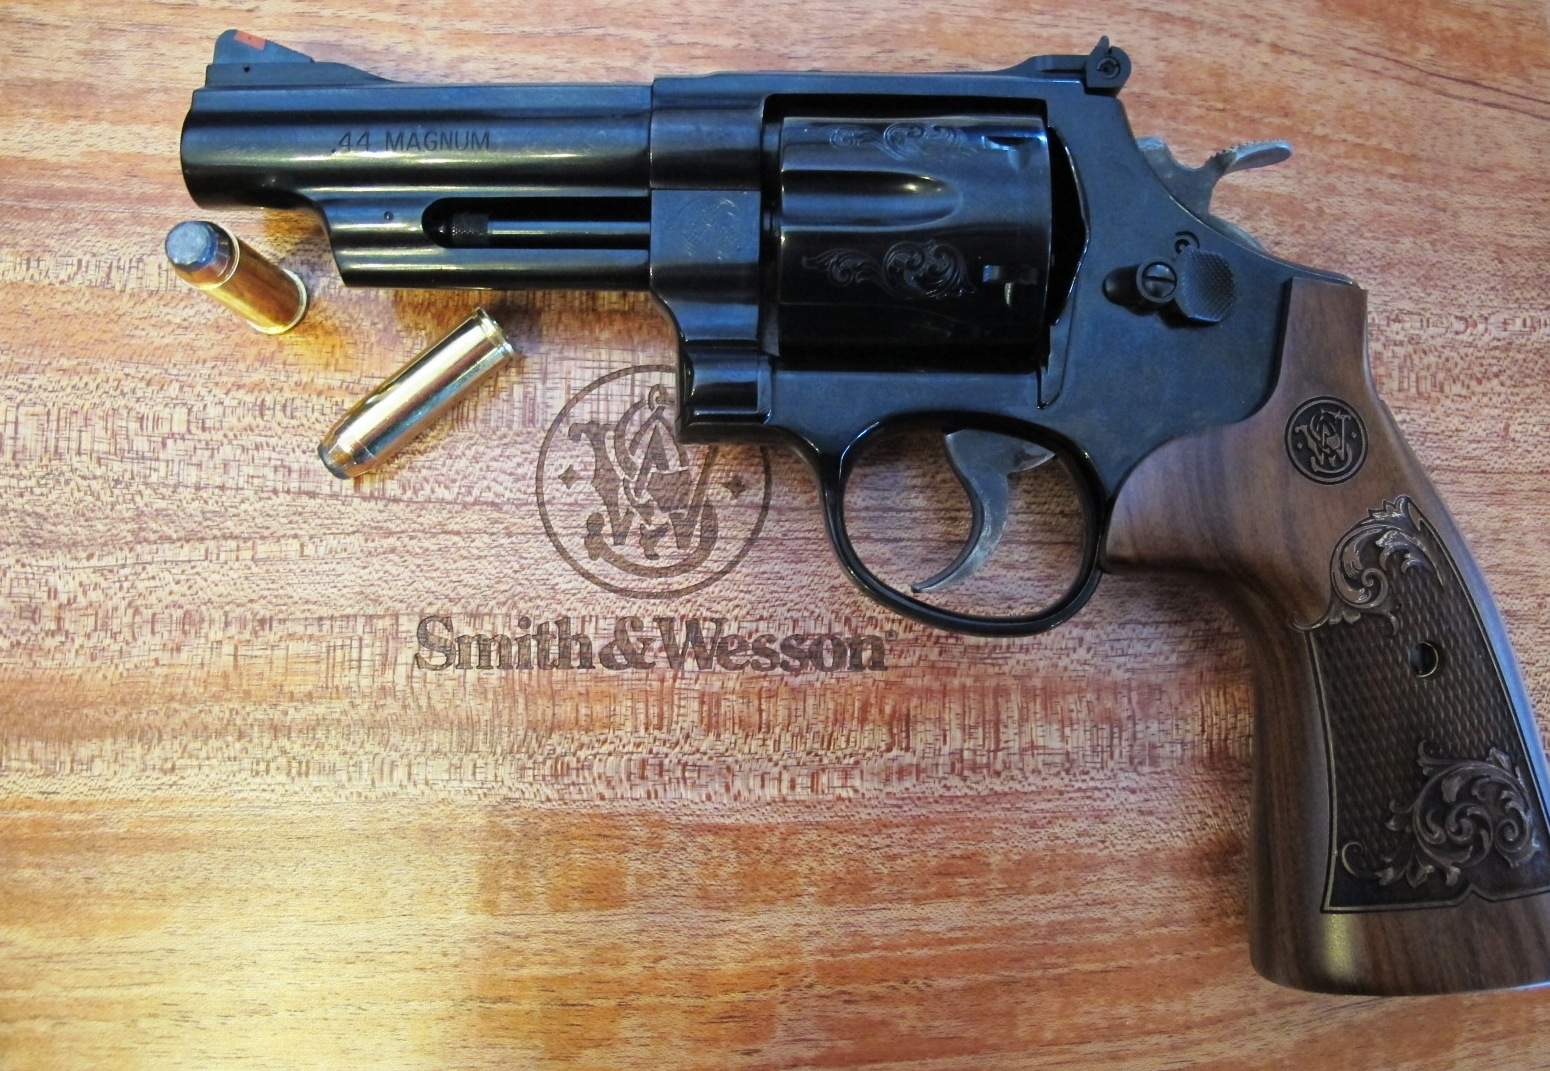 Smith & Wesson mod. 29 cal. .44 Magnum